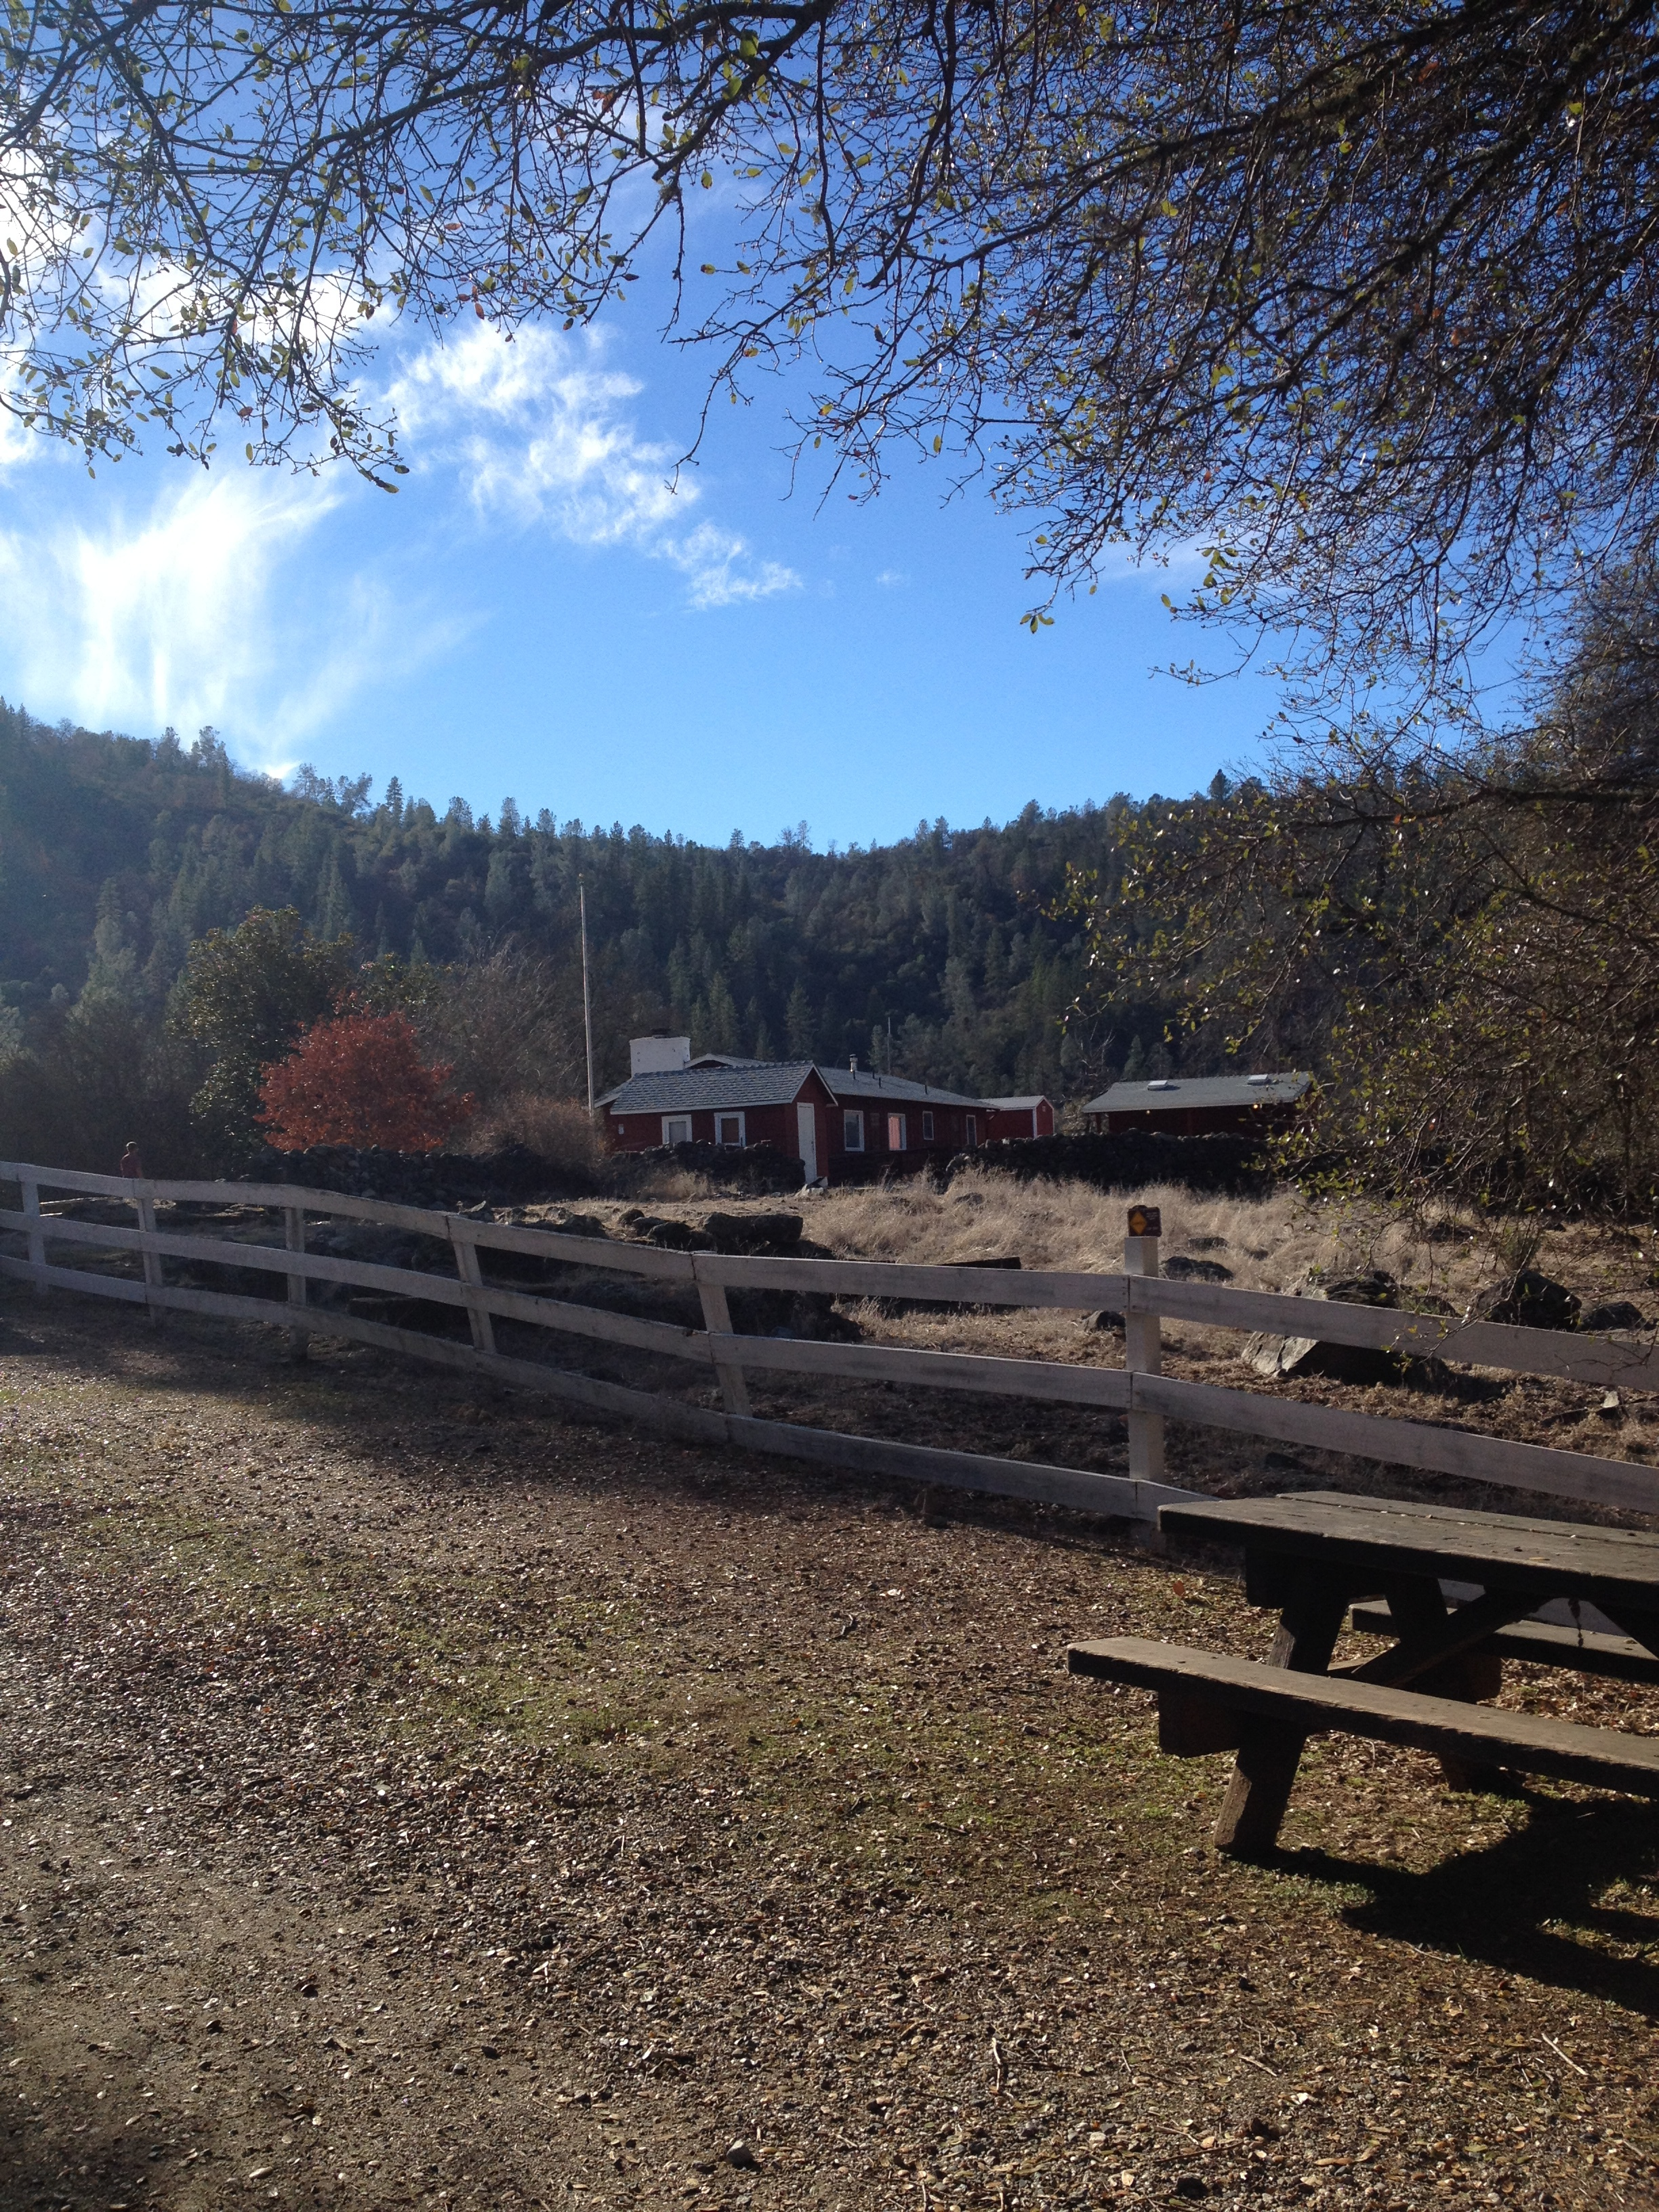 A view of the visitor's center at the  South Yuba River State Park . This area reminded me of the East Coast. I can't wait to come back in the summer.